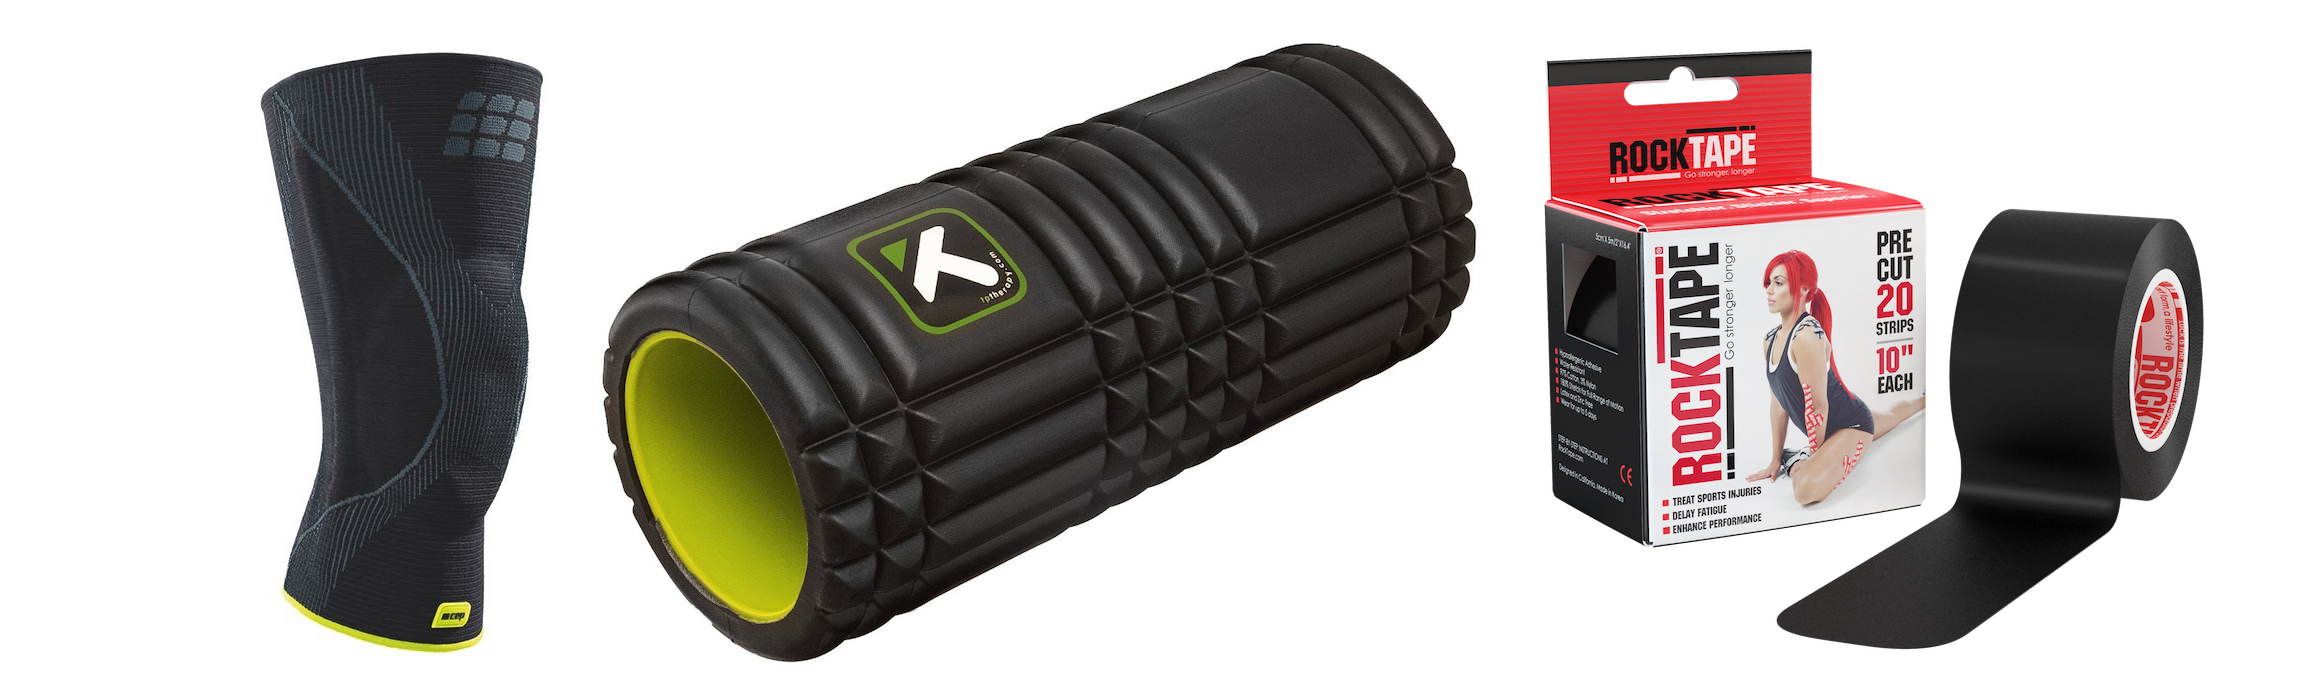 rock tape foam  roller and knee brace